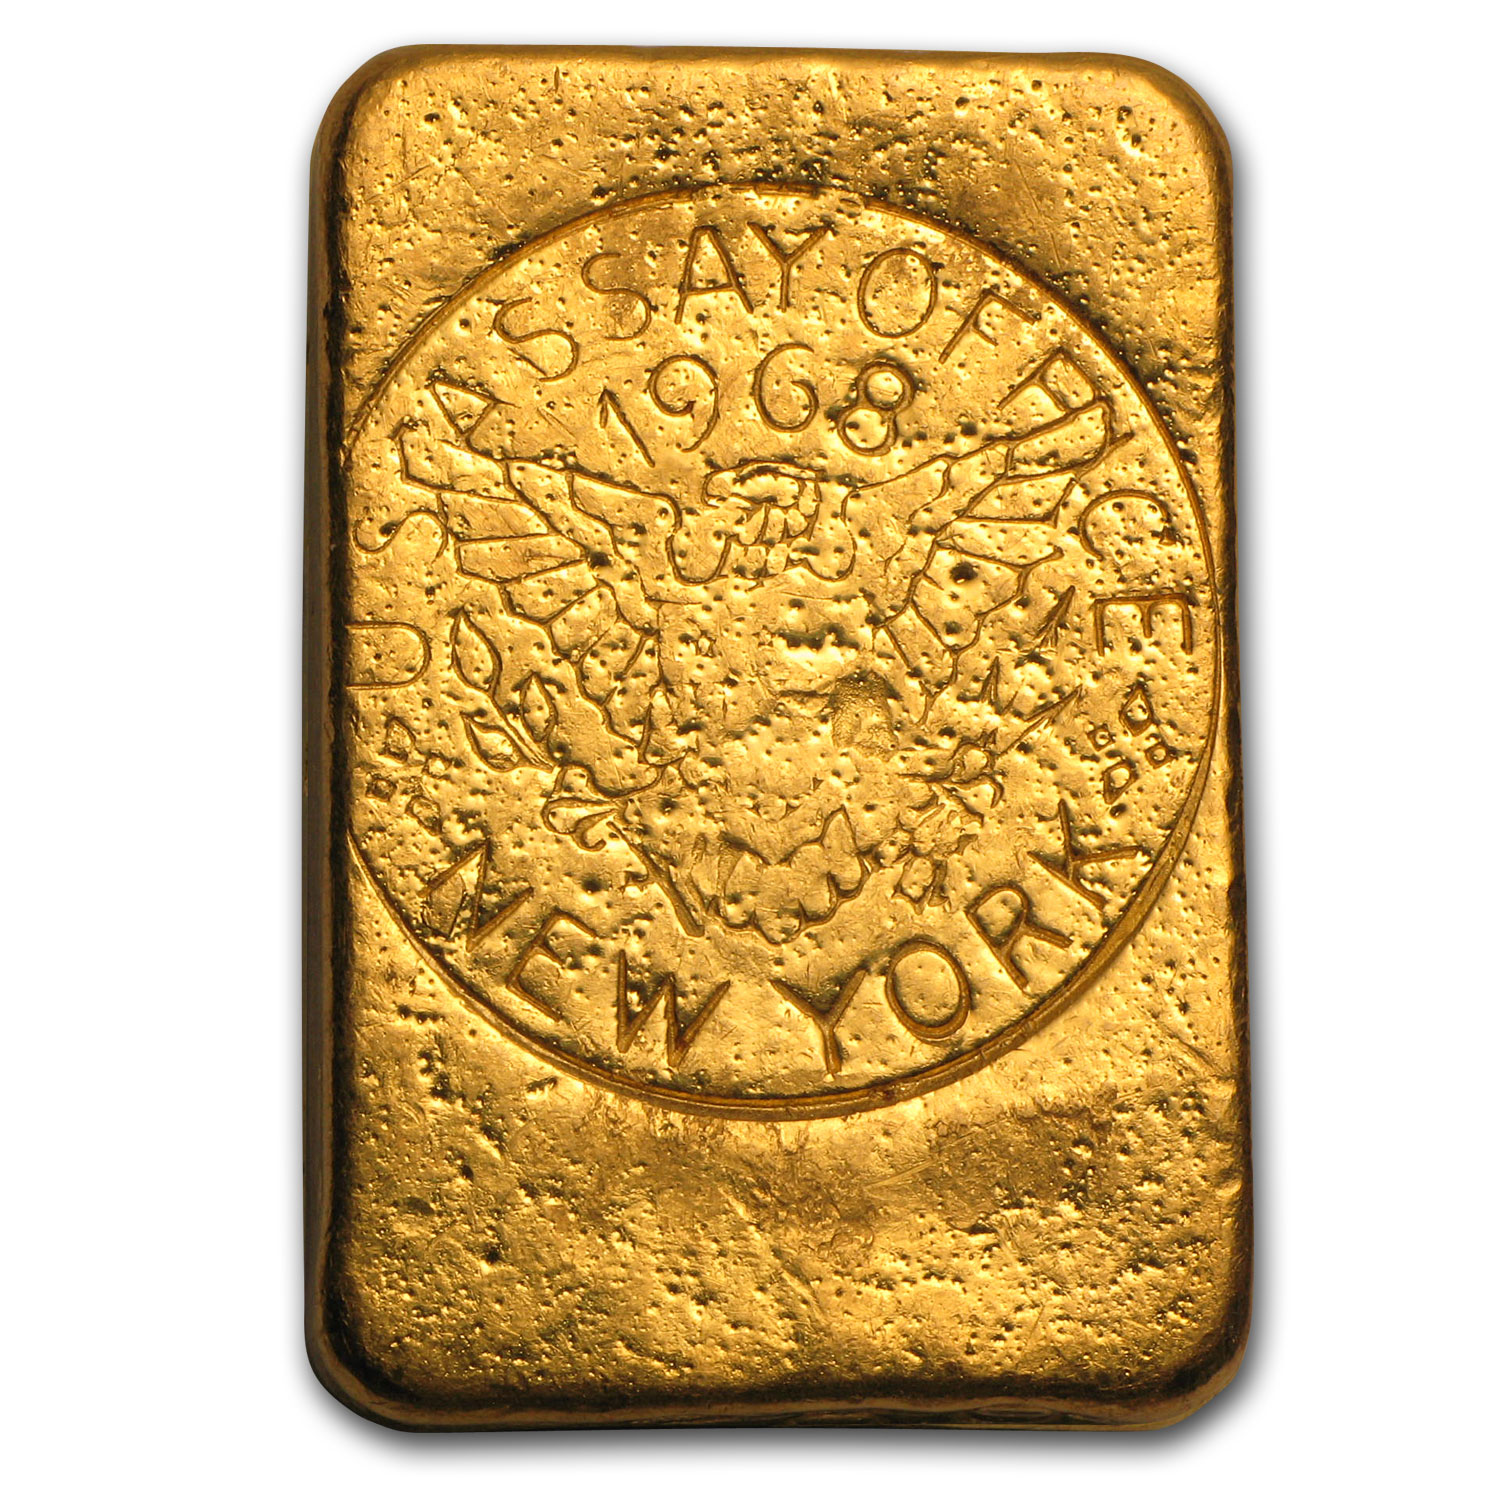 5.24 oz Gold Bar - 1968 NY Assay Office Ingot (999.8 Fine)